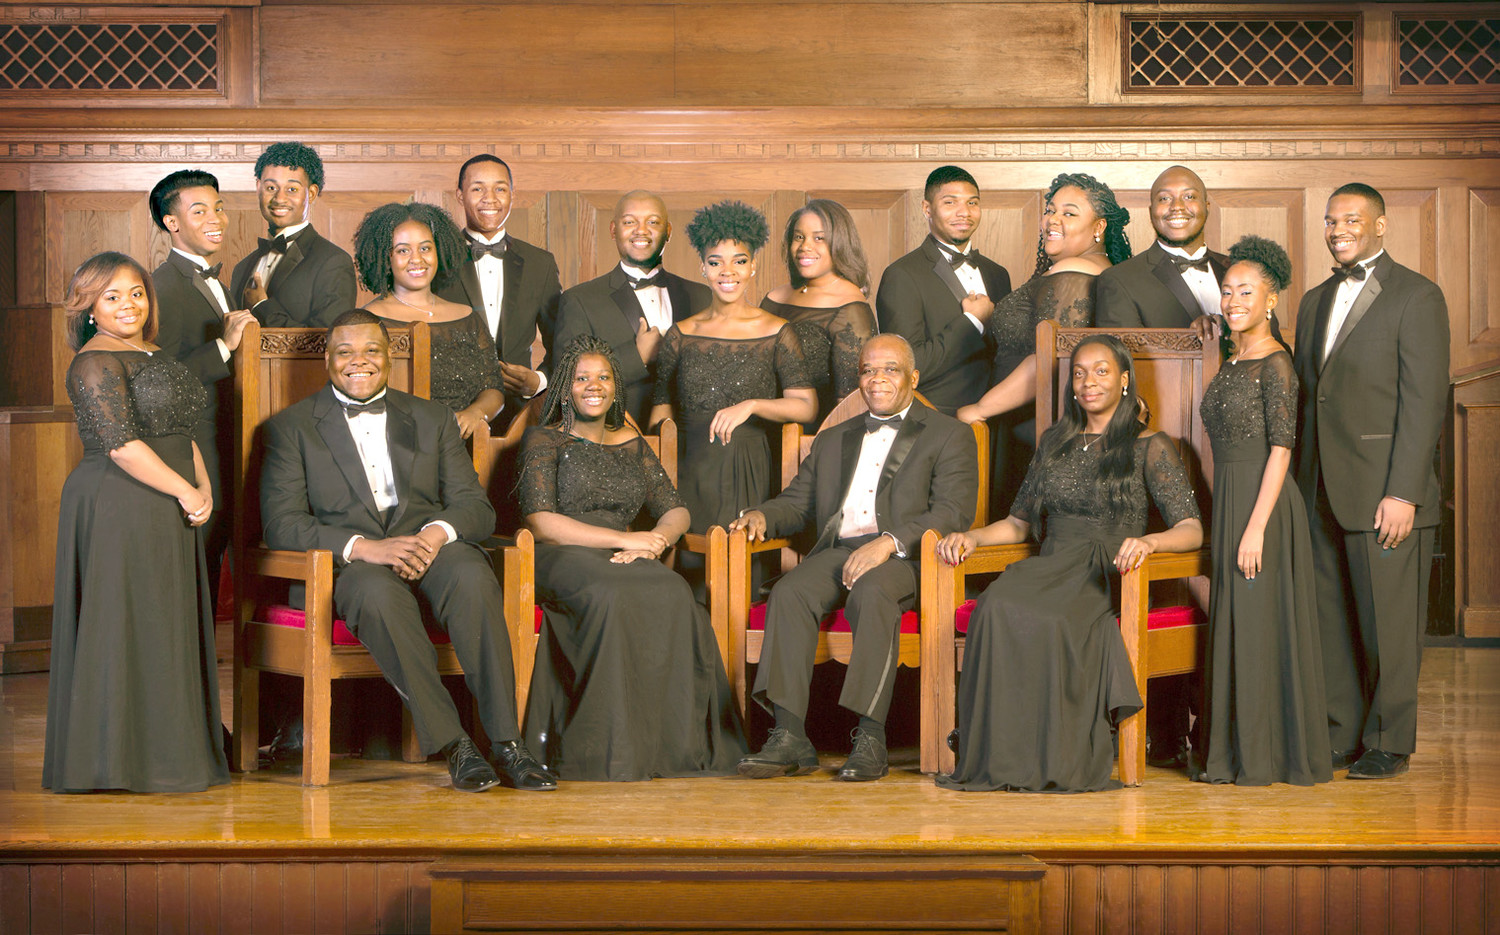 "SOUTHERN ADVENTIST University welcomes the Fisk Jubilee Singers for a concert on Feb. 10, 6 p.m., in the Collegedale Church of Seventh-day Adventists. Fisk University opened in Nashville in 1866 as the first American institution to offer a liberal arts education to ""young men and women irrespective of color."" The ensemble was founded on Oct. 6, 1871, and continues to travel around the world singing Negro spirituals and representing Fisk University. The two-time Grammy-nominated Fisk Jubilee Singers have won a Dove Award and were inducted into the Gospel Music Hall of Fame as well as the Music City Walk of Fame."